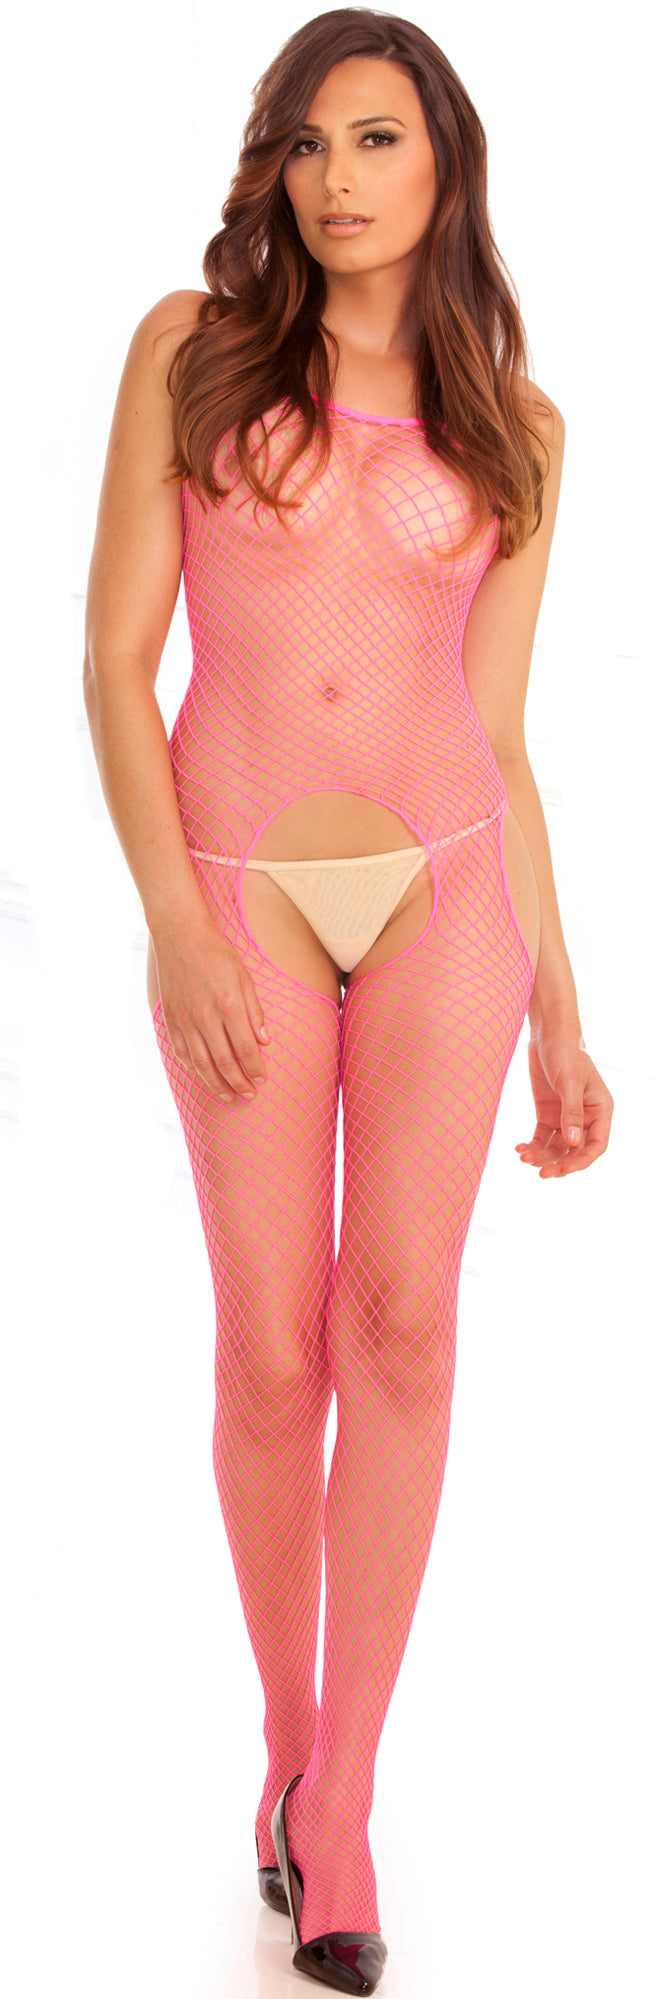 Industrial Net Suspender Bodystocking RR7002-HON Pink Front